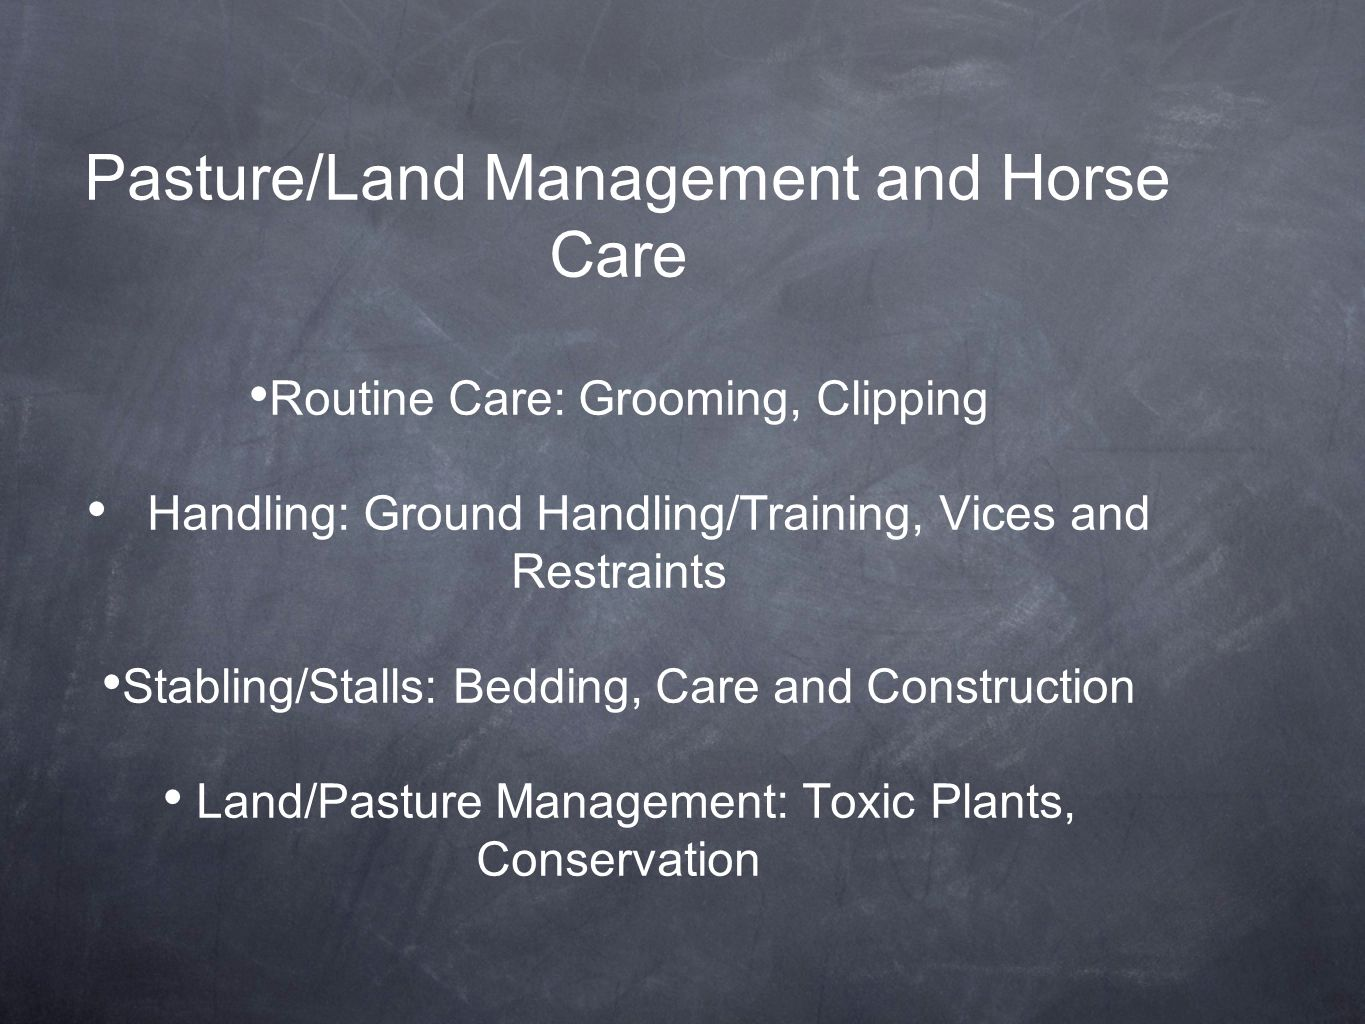 Pasture/Land Management and Horse Care Routine Care: Grooming, Clipping Handling: Ground Handling/Training, Vices and Restraints Stabling/Stalls: Bedding, Care and Construction Land/Pasture Management: Toxic Plants, Conservation